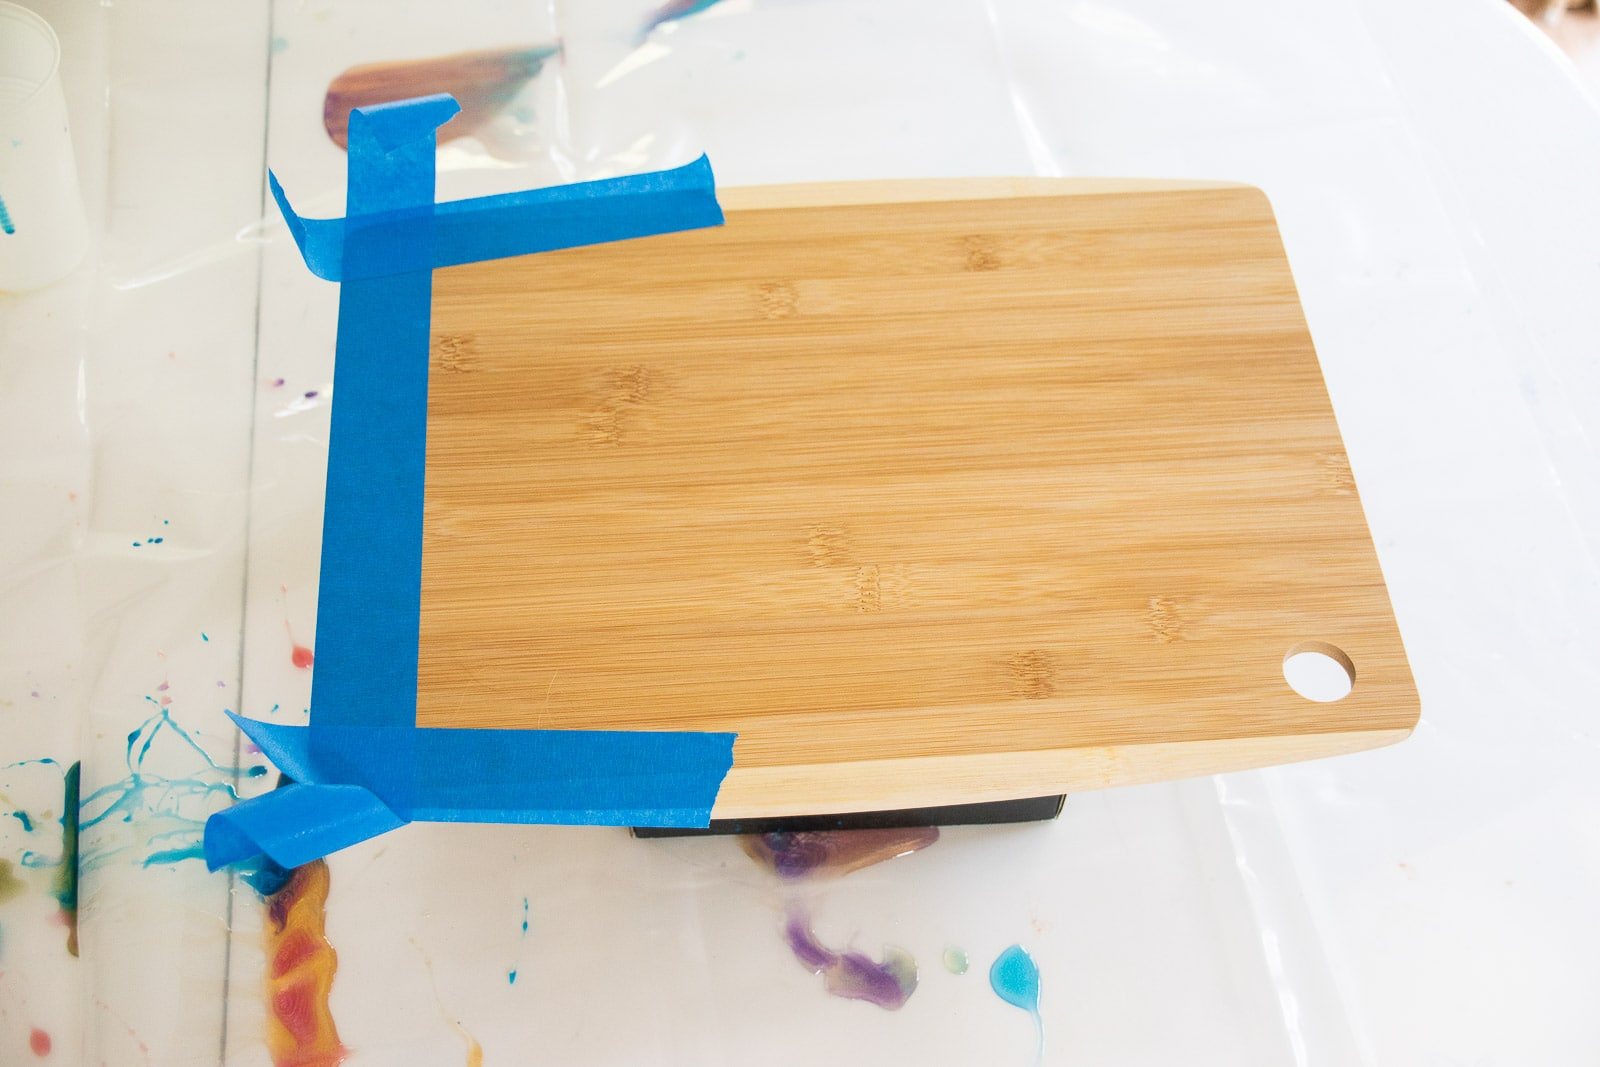 sand and tape the cutting board